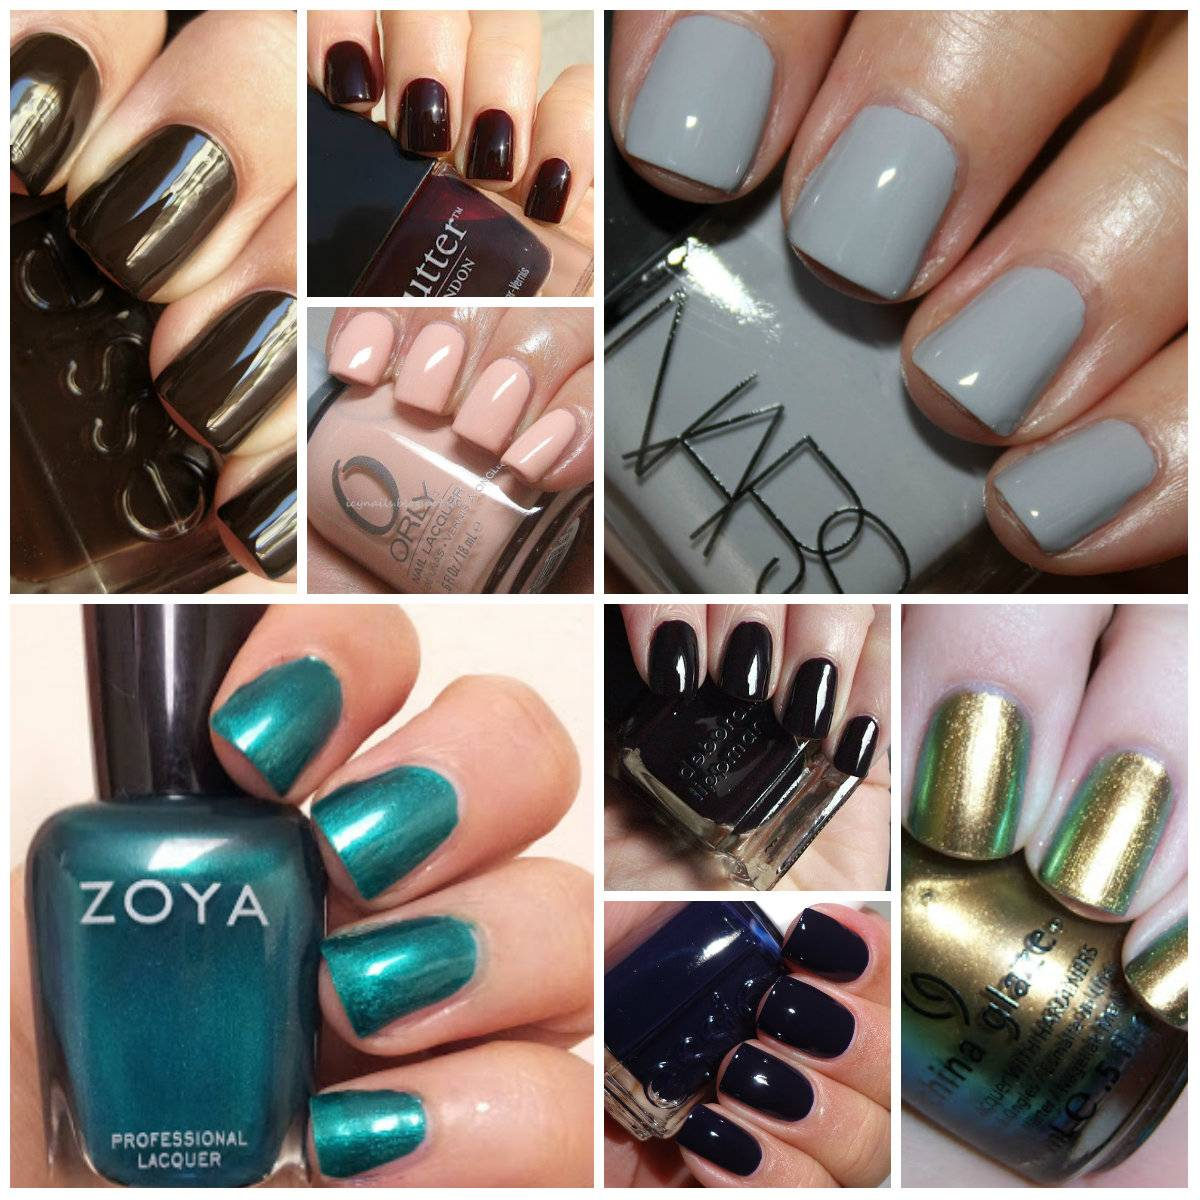 What Nail Color Is In: 8 Must-Have Fall Nail Polish Colors!